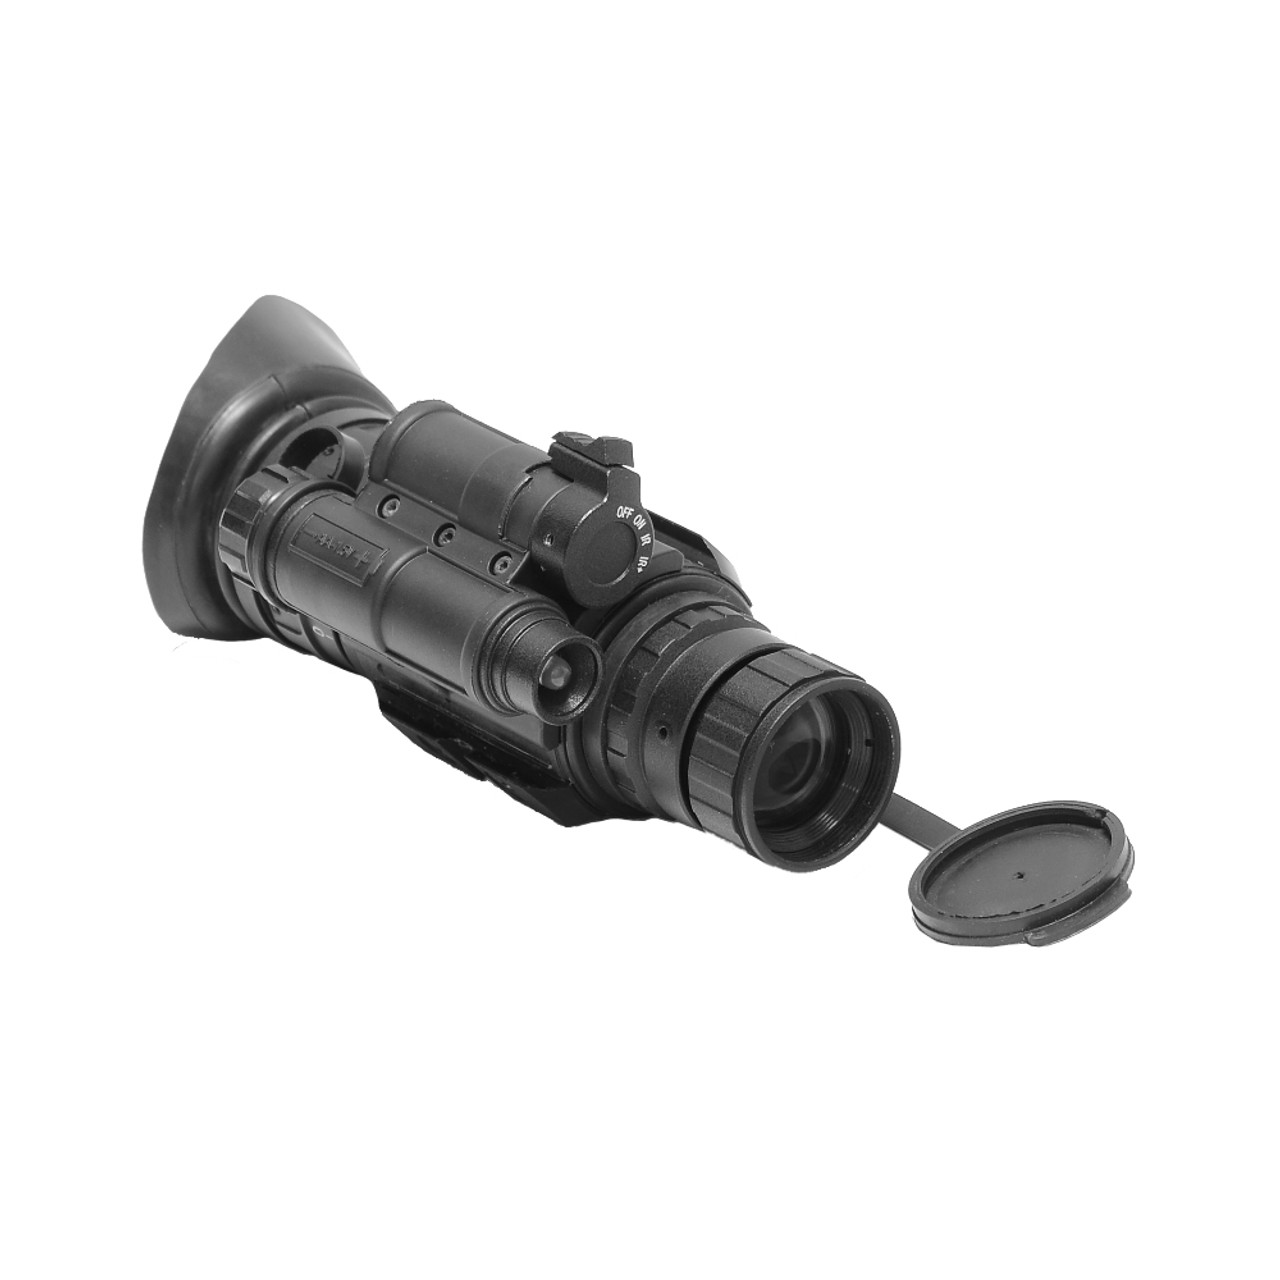 Compact Night Vision Monocular GS-14